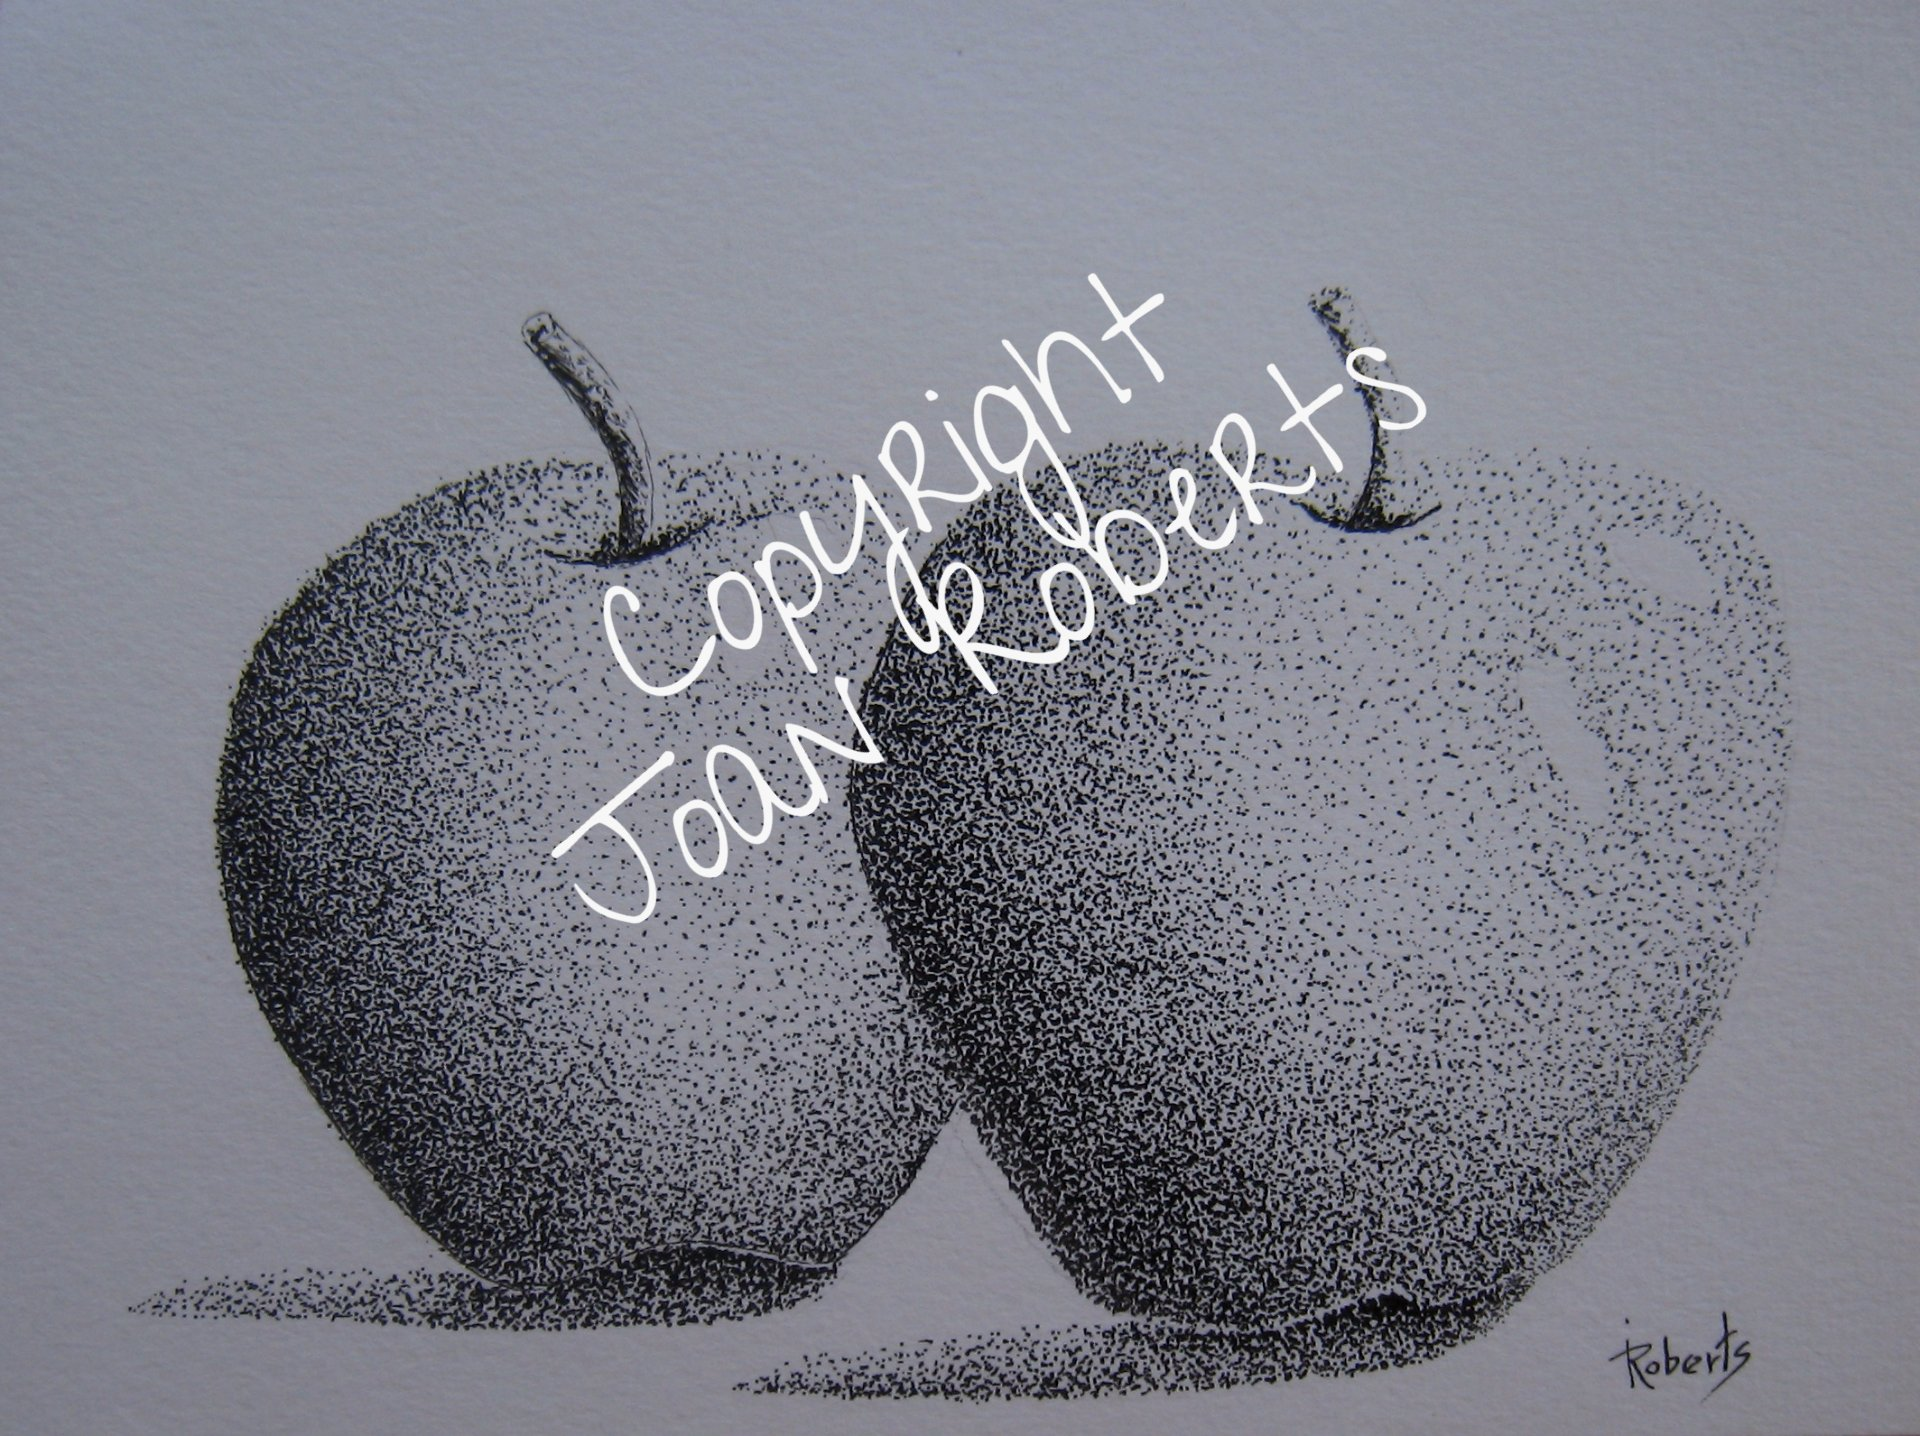 Two Apples 7.5 x 5.5 $120.00